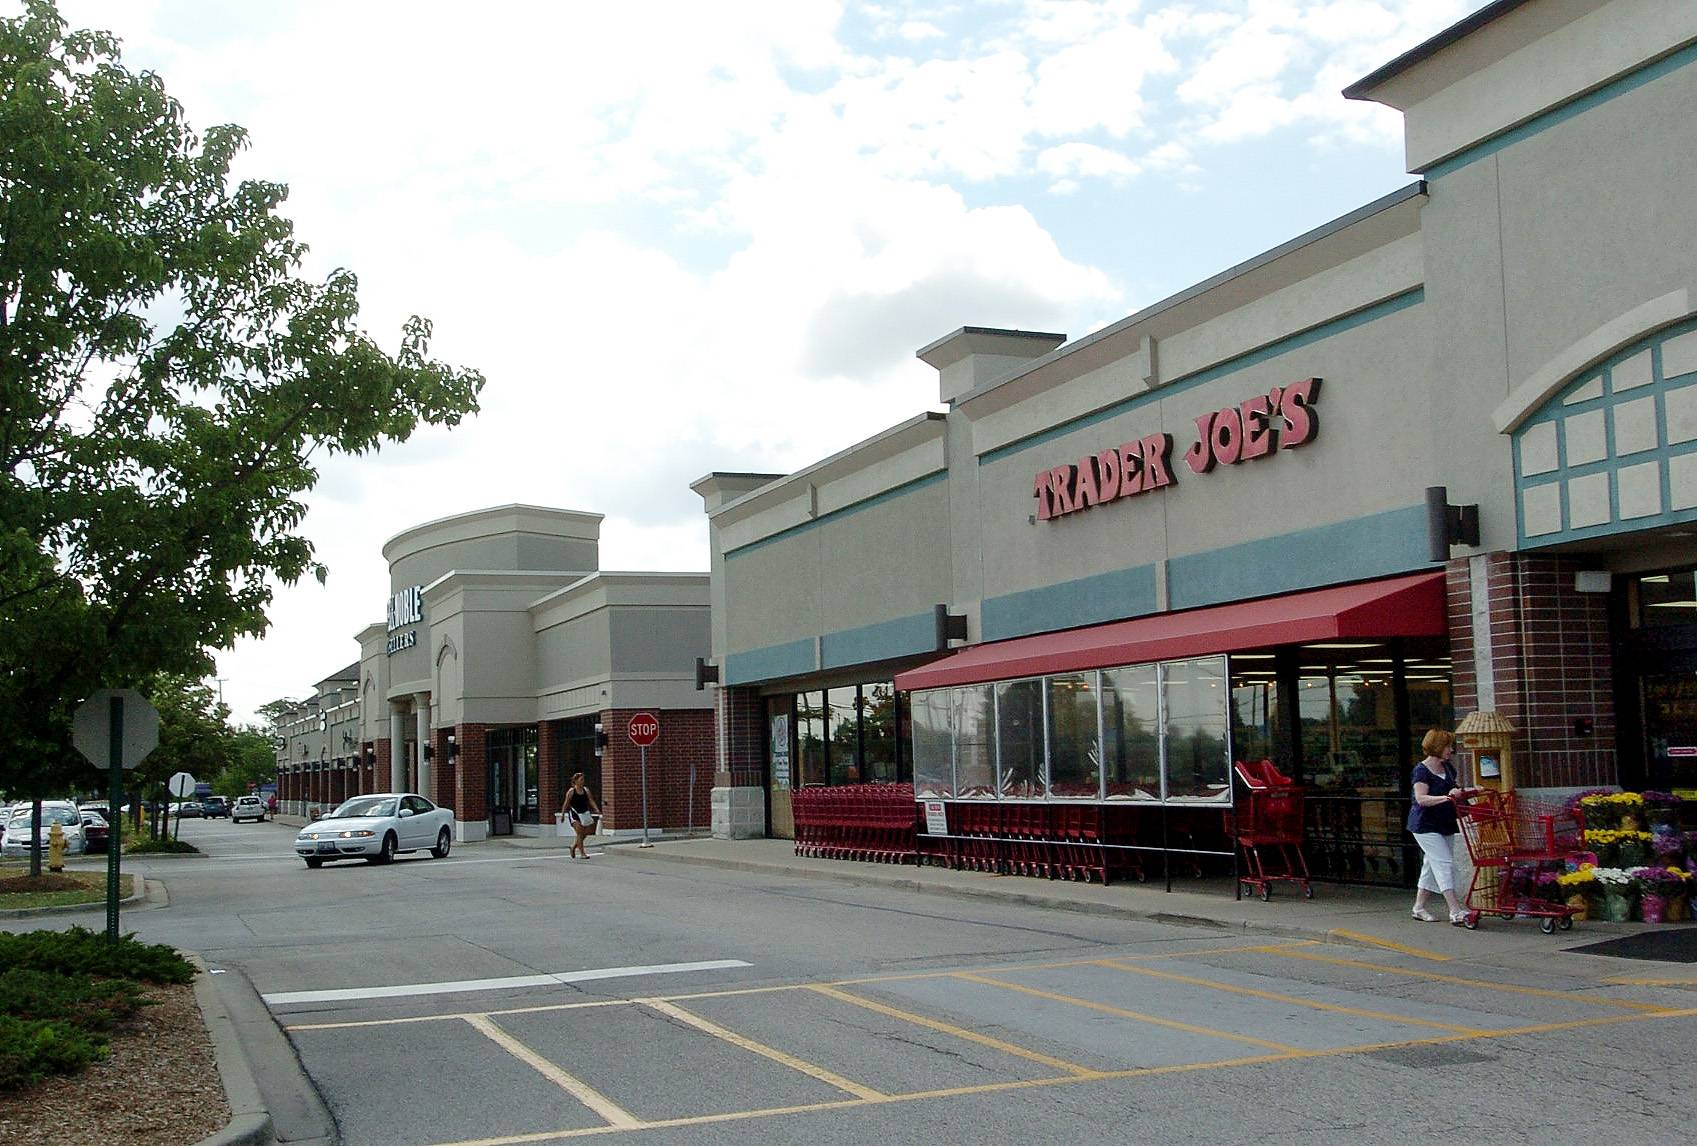 Bob Chwedyk/bchwedyk@dailyherald.com, 2011 Arlington Heights has a Trader Joe's at Rand and Arlington Hts. roads, but the village is paying for a study to create a unified look for the whole shopping area around there.